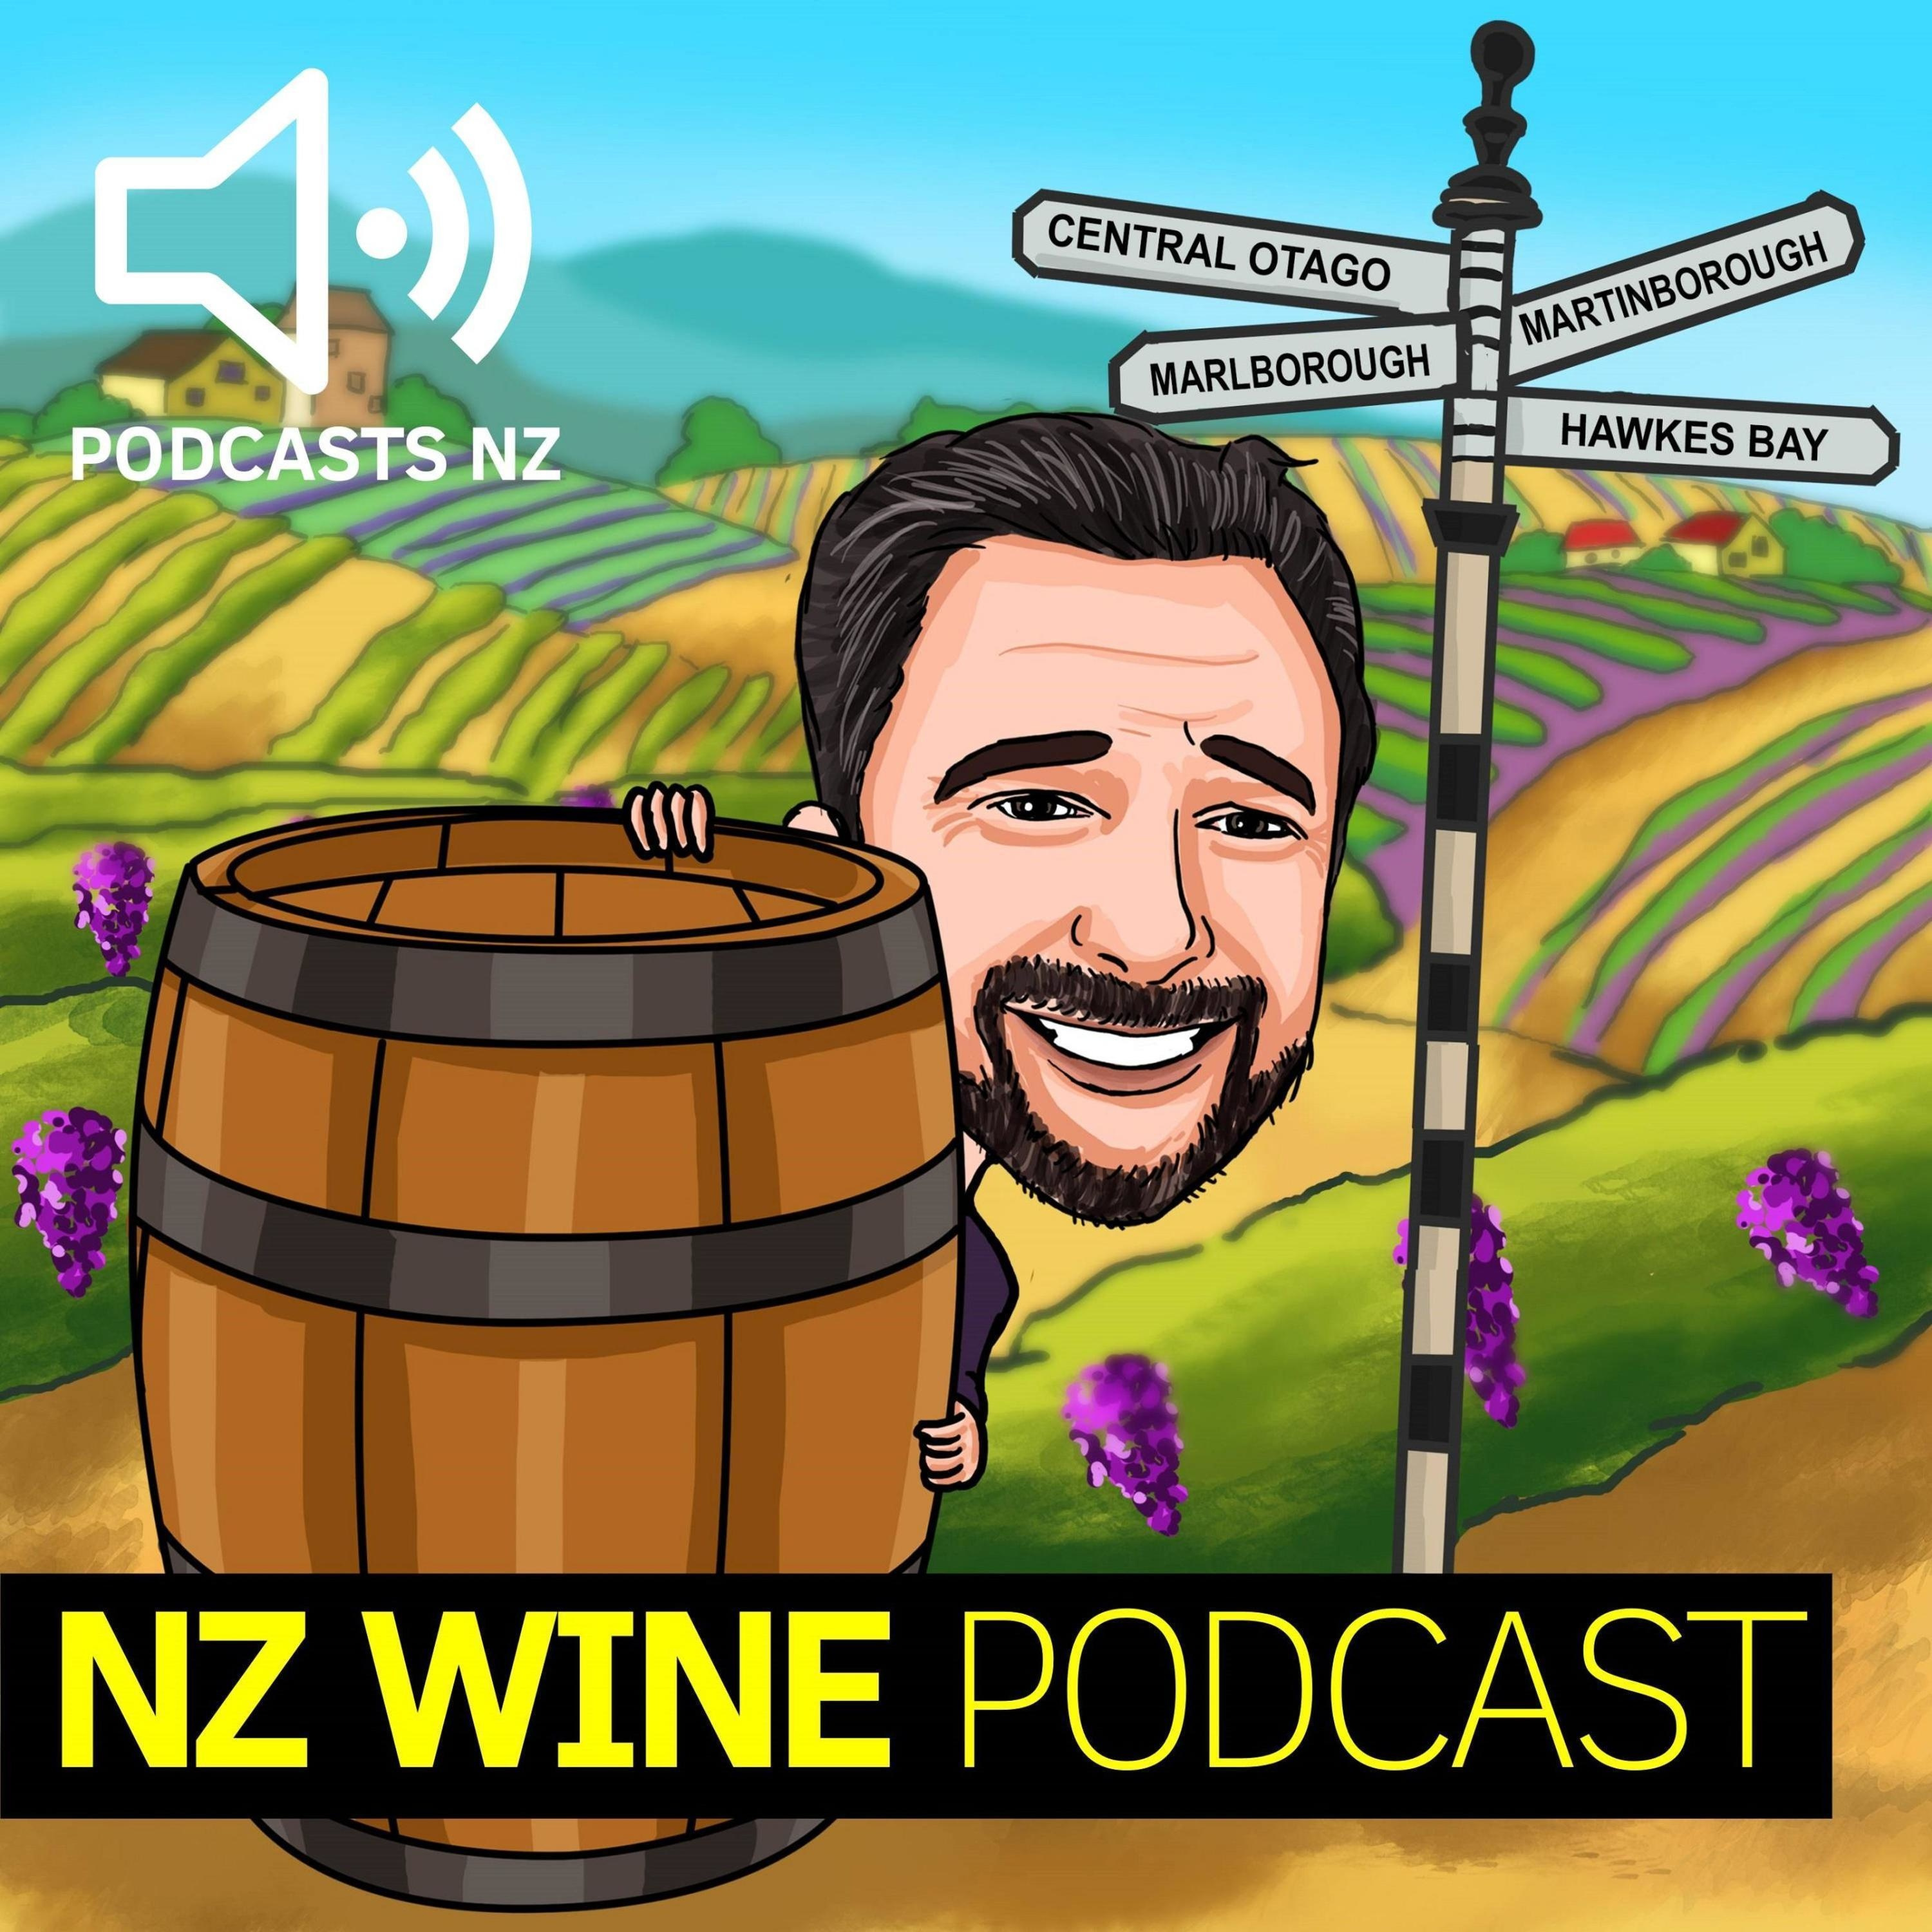 NZ Wine Podcast 50: Craig Gasson - Lamont Wines